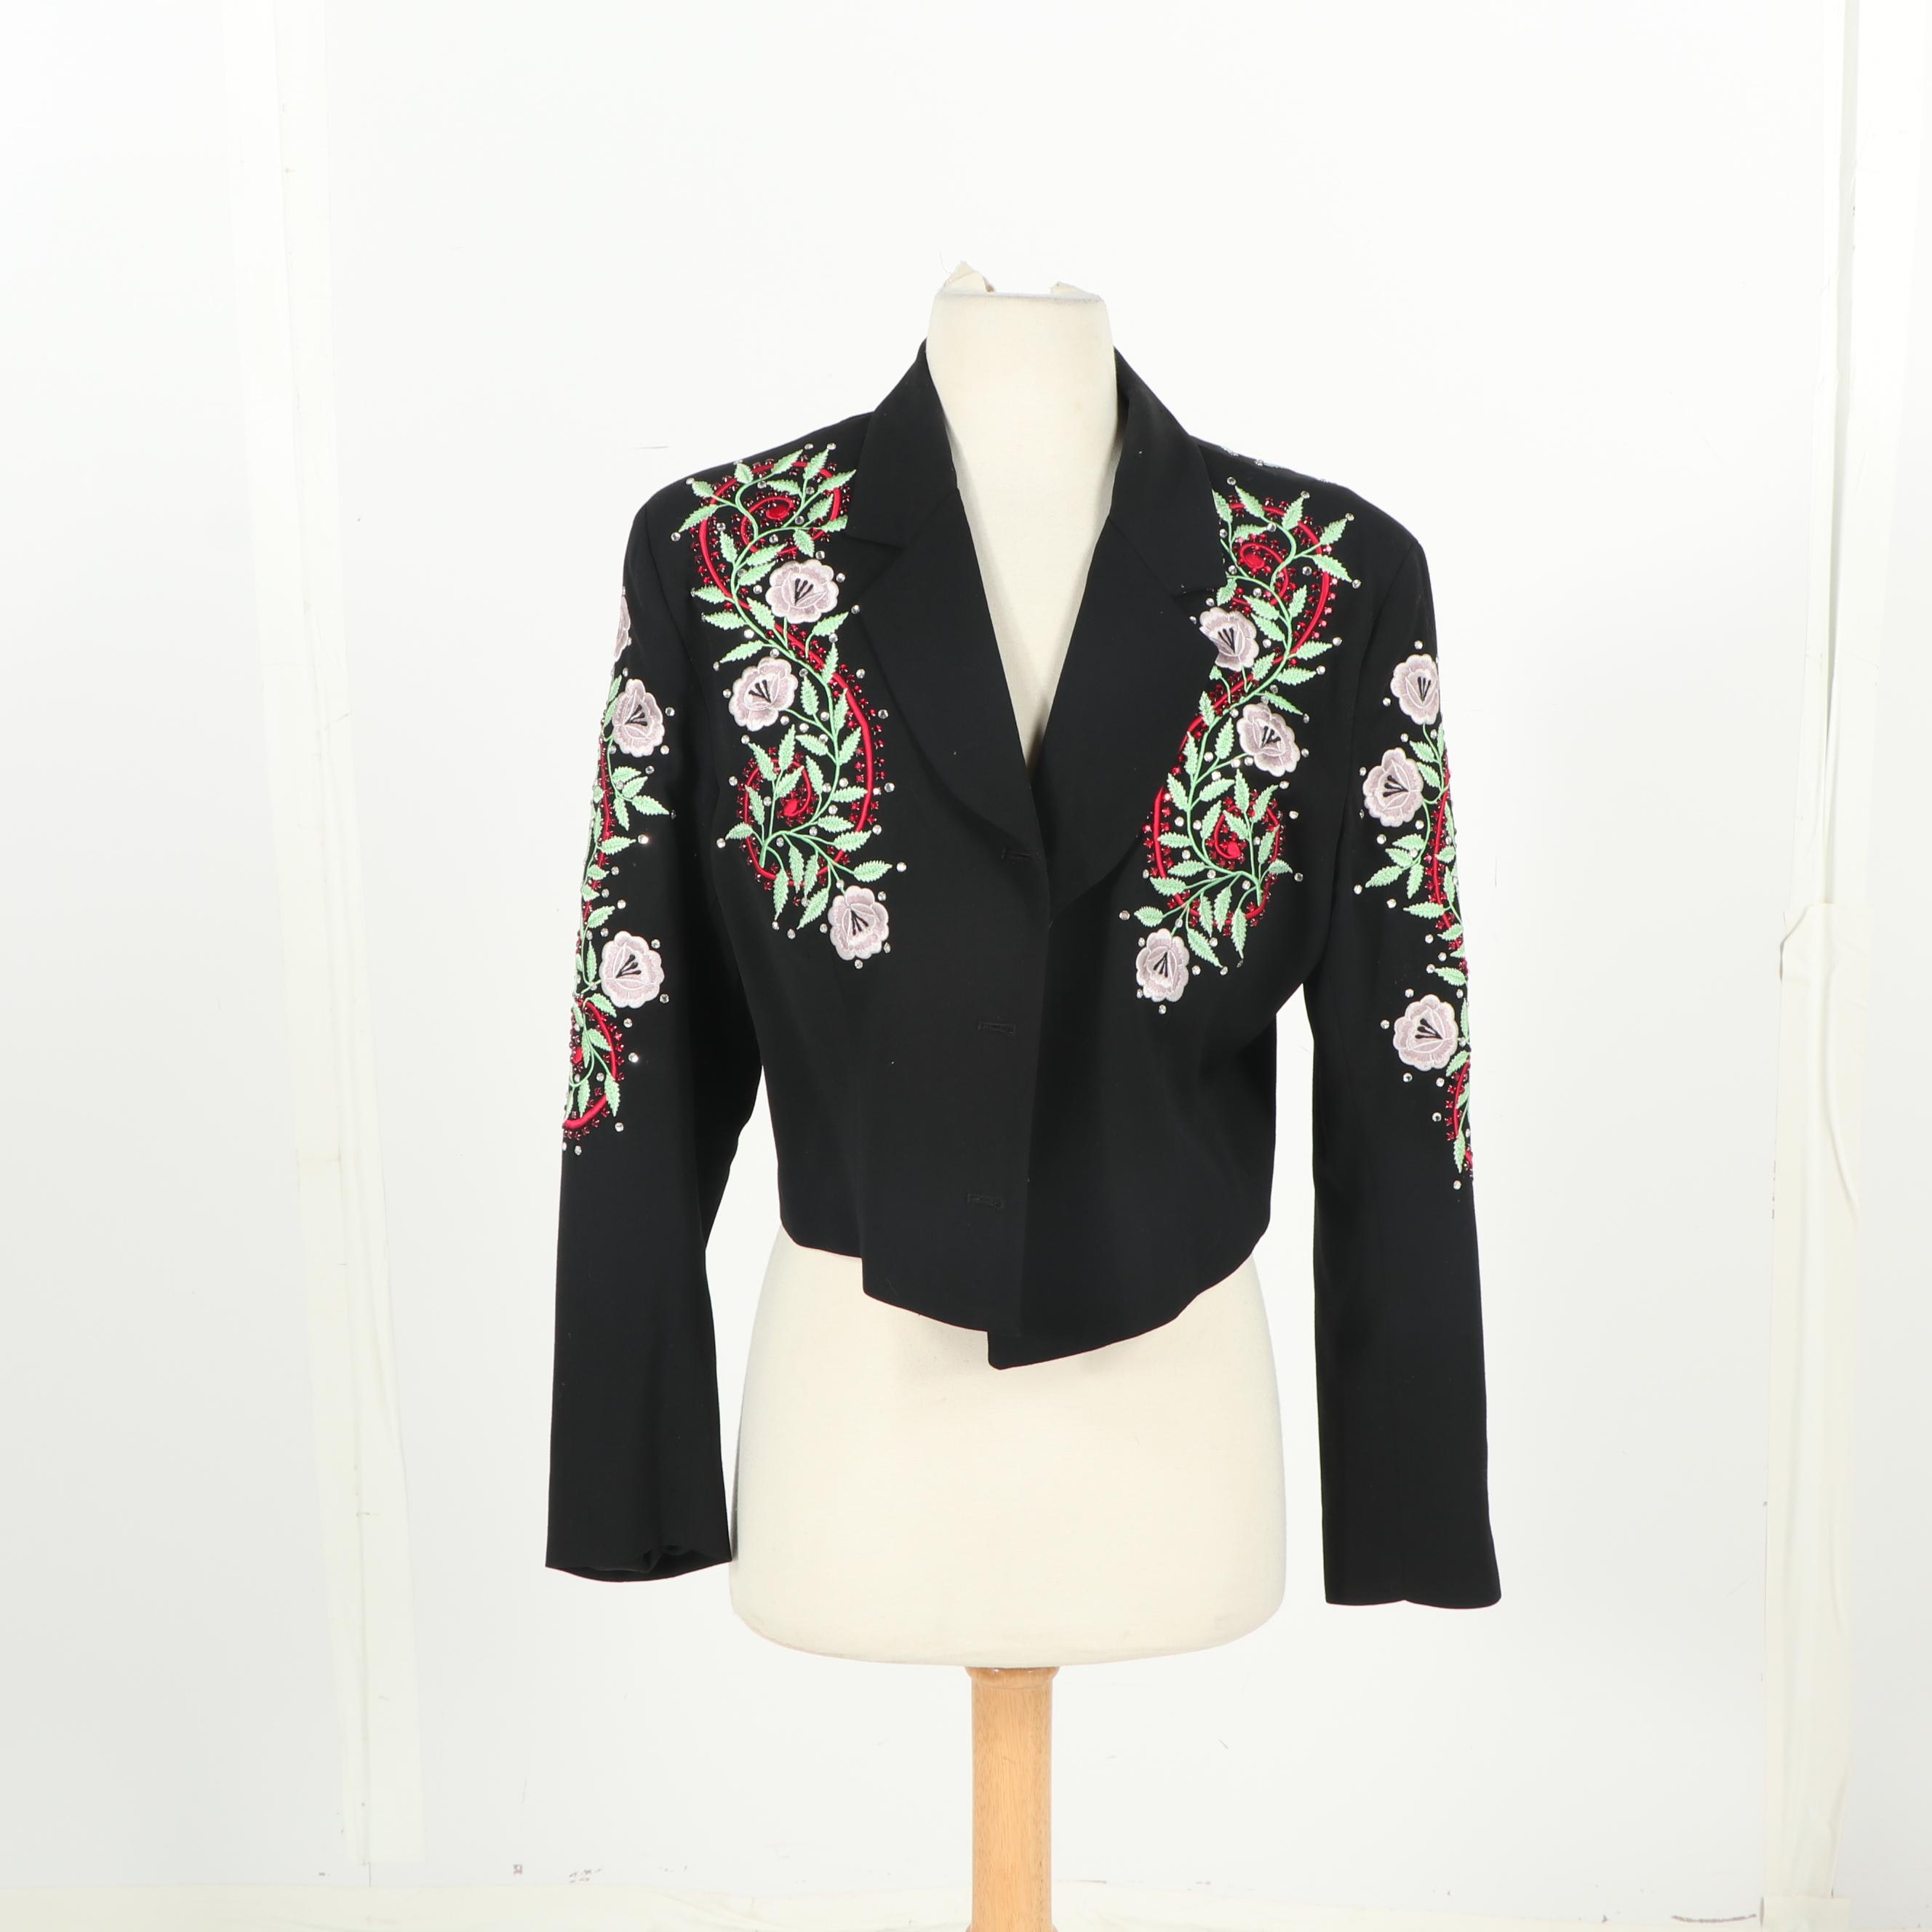 Women's The Manuel Collection Floral Embroidered Short Jacket with Rhinestones